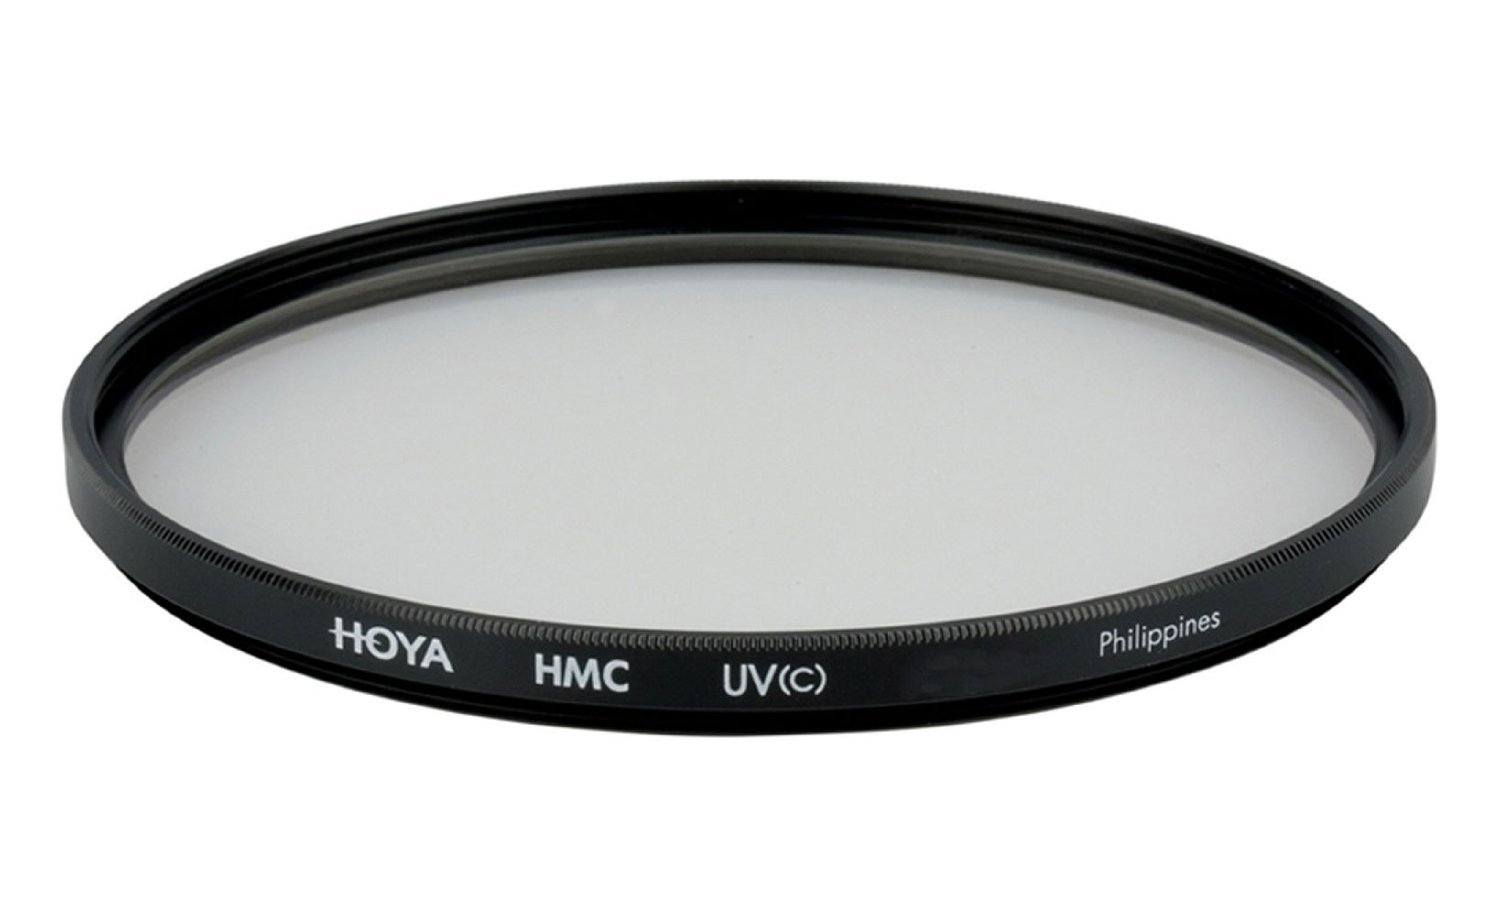 Hoya 82mm UV (Ultra Violet) Multi Coated Slim Frame Glass Filter Made in Japan by Hoya